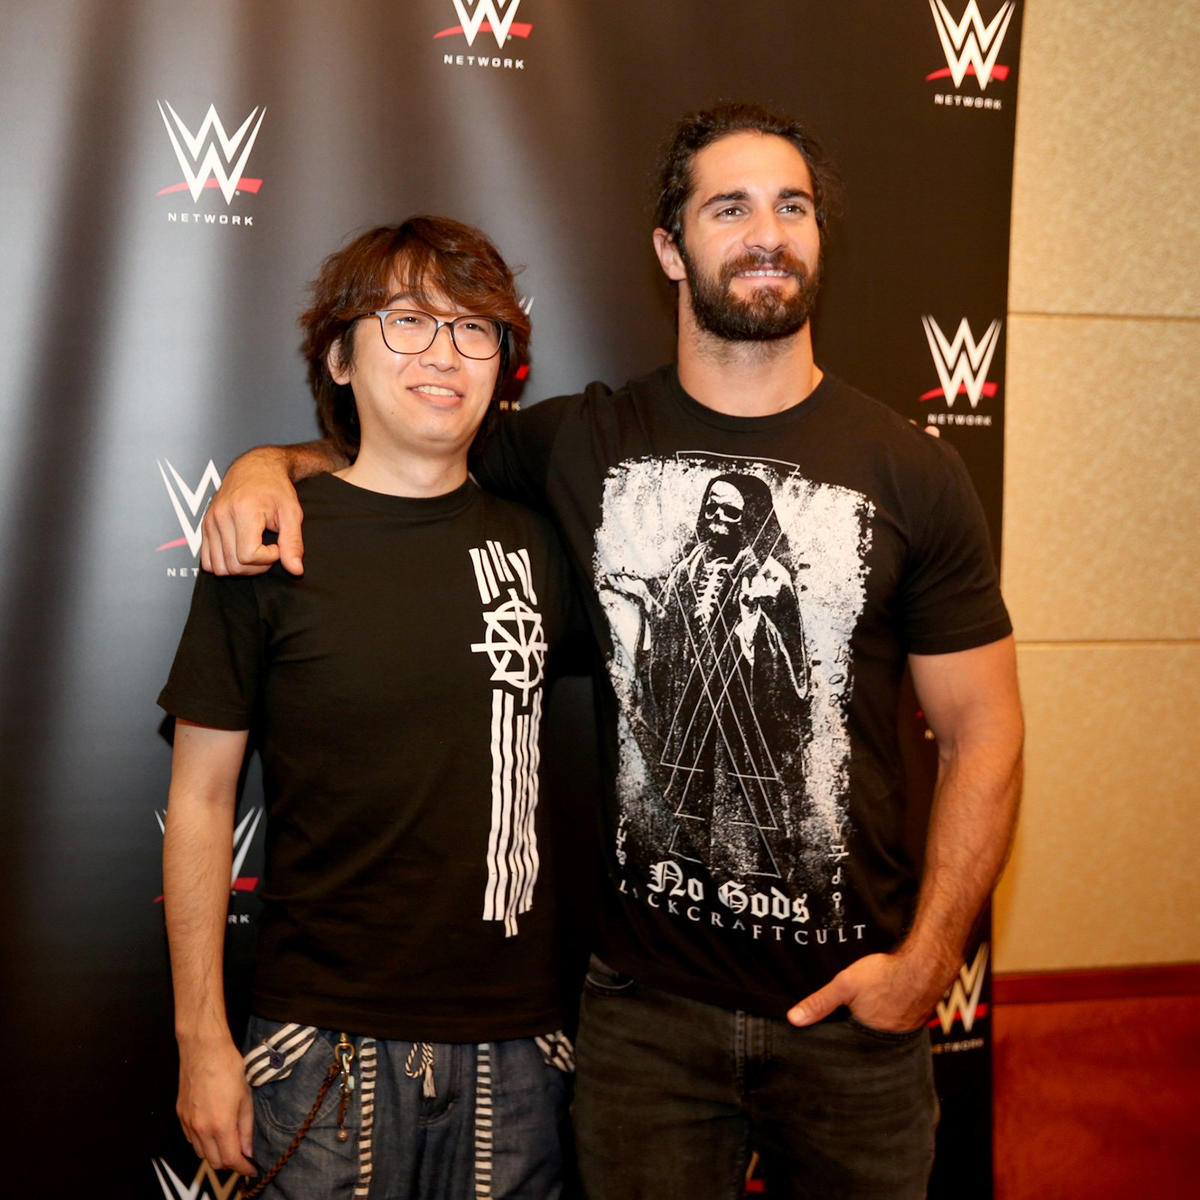 Wwe superstars meet the wwe universe and media in tokyo japan wwe photo kristyandbryce Image collections